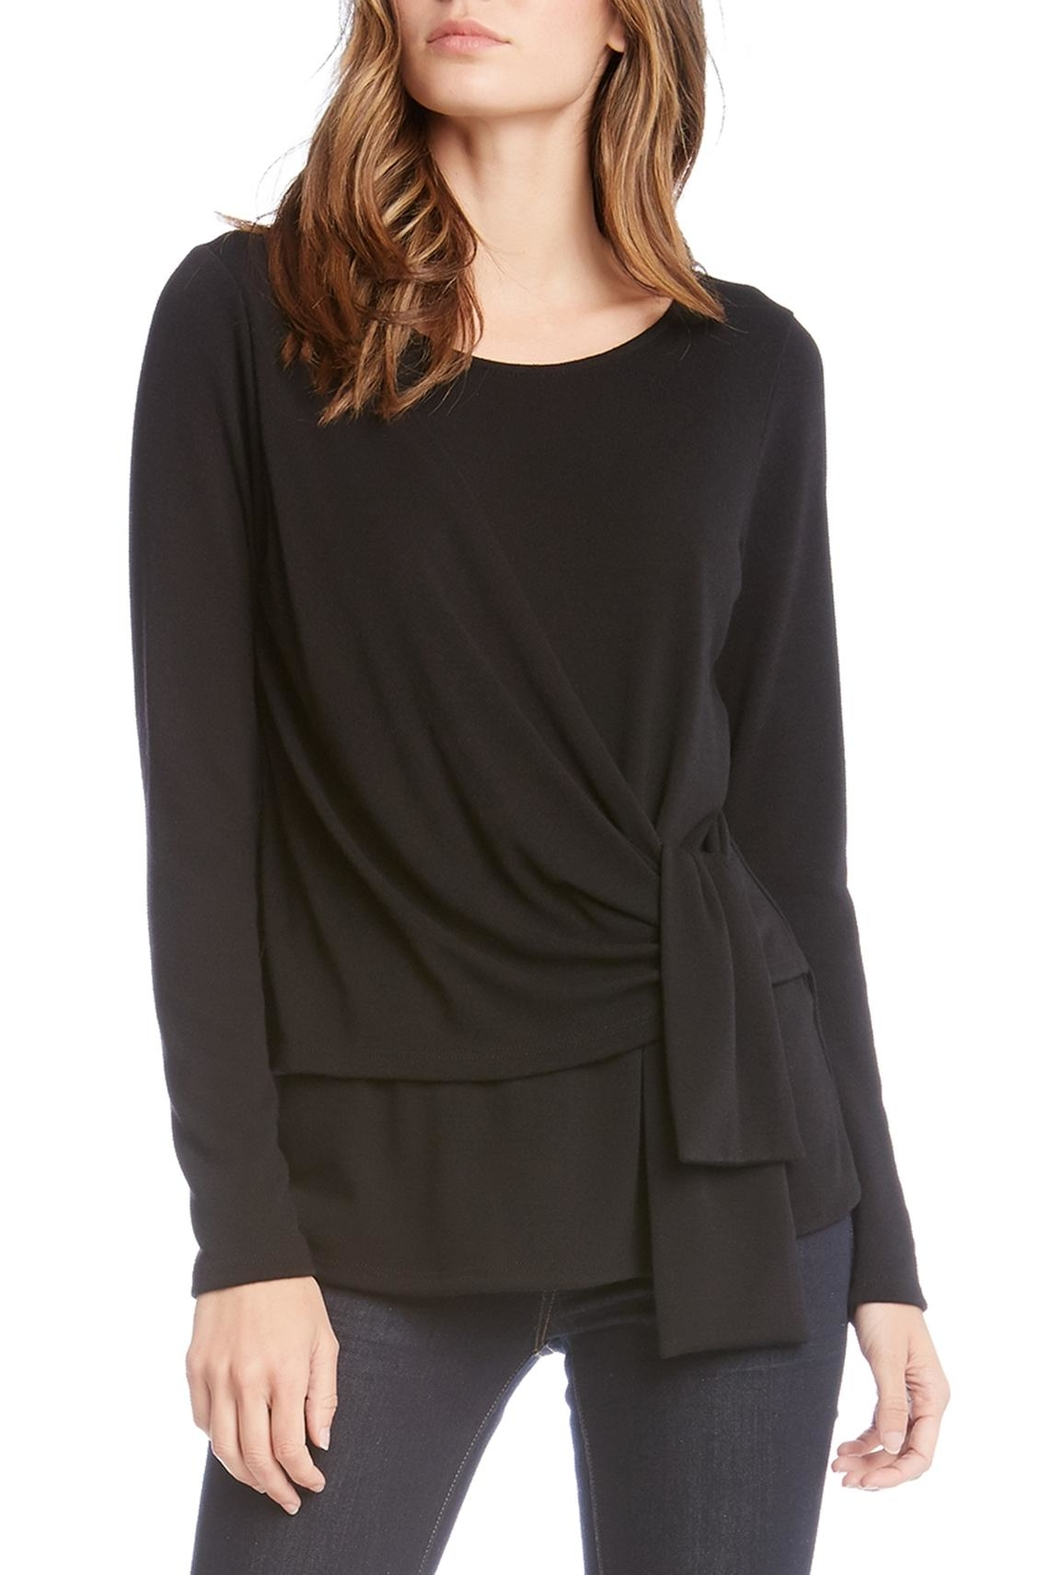 blk front drape black top crop drapes in asymmetric